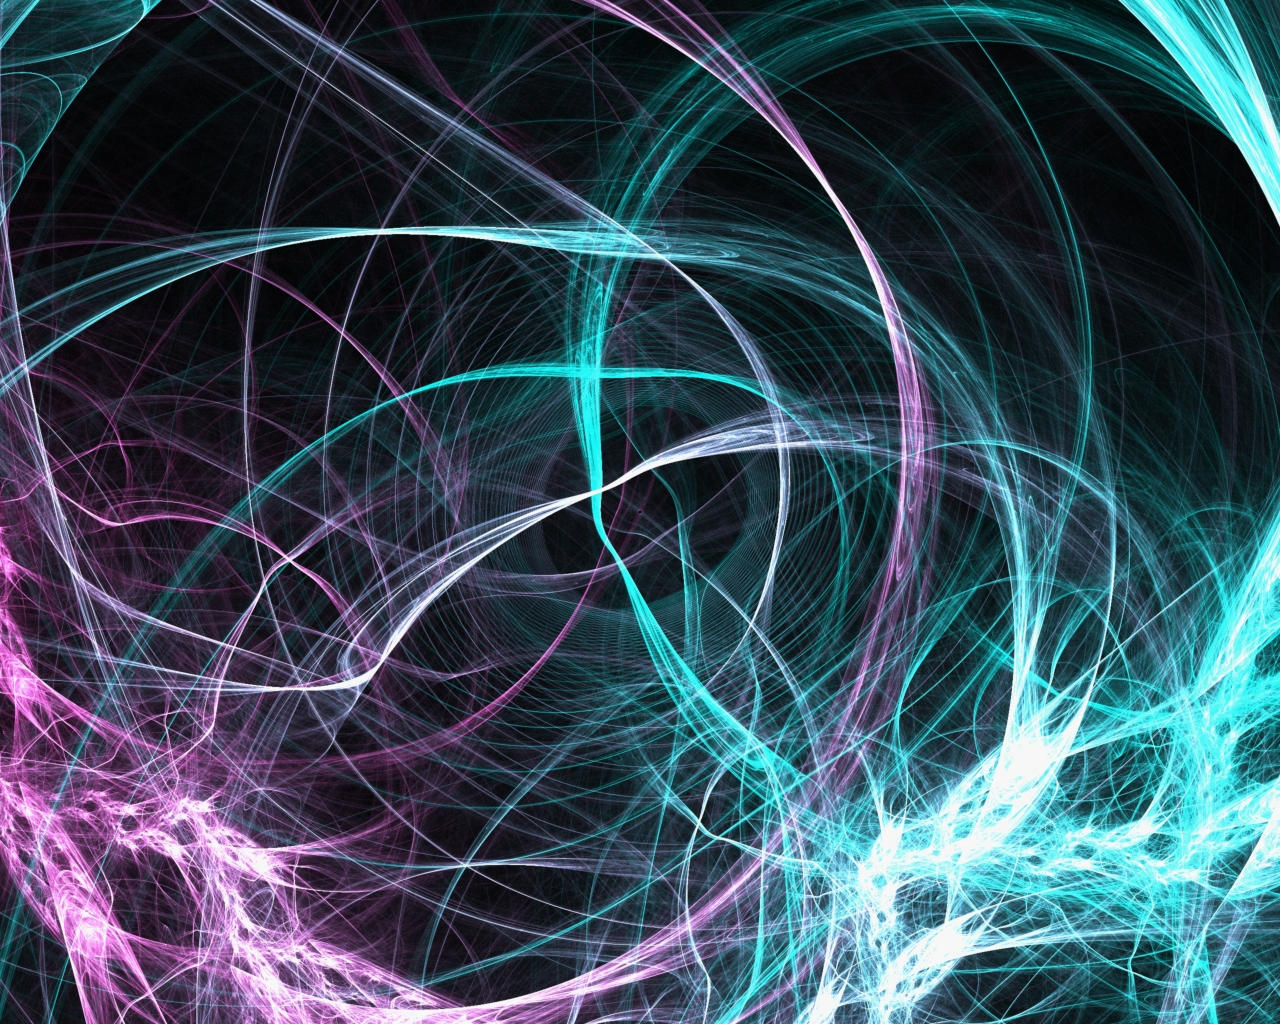 wallpaper abstract vii by dizfunctionality on deviantart